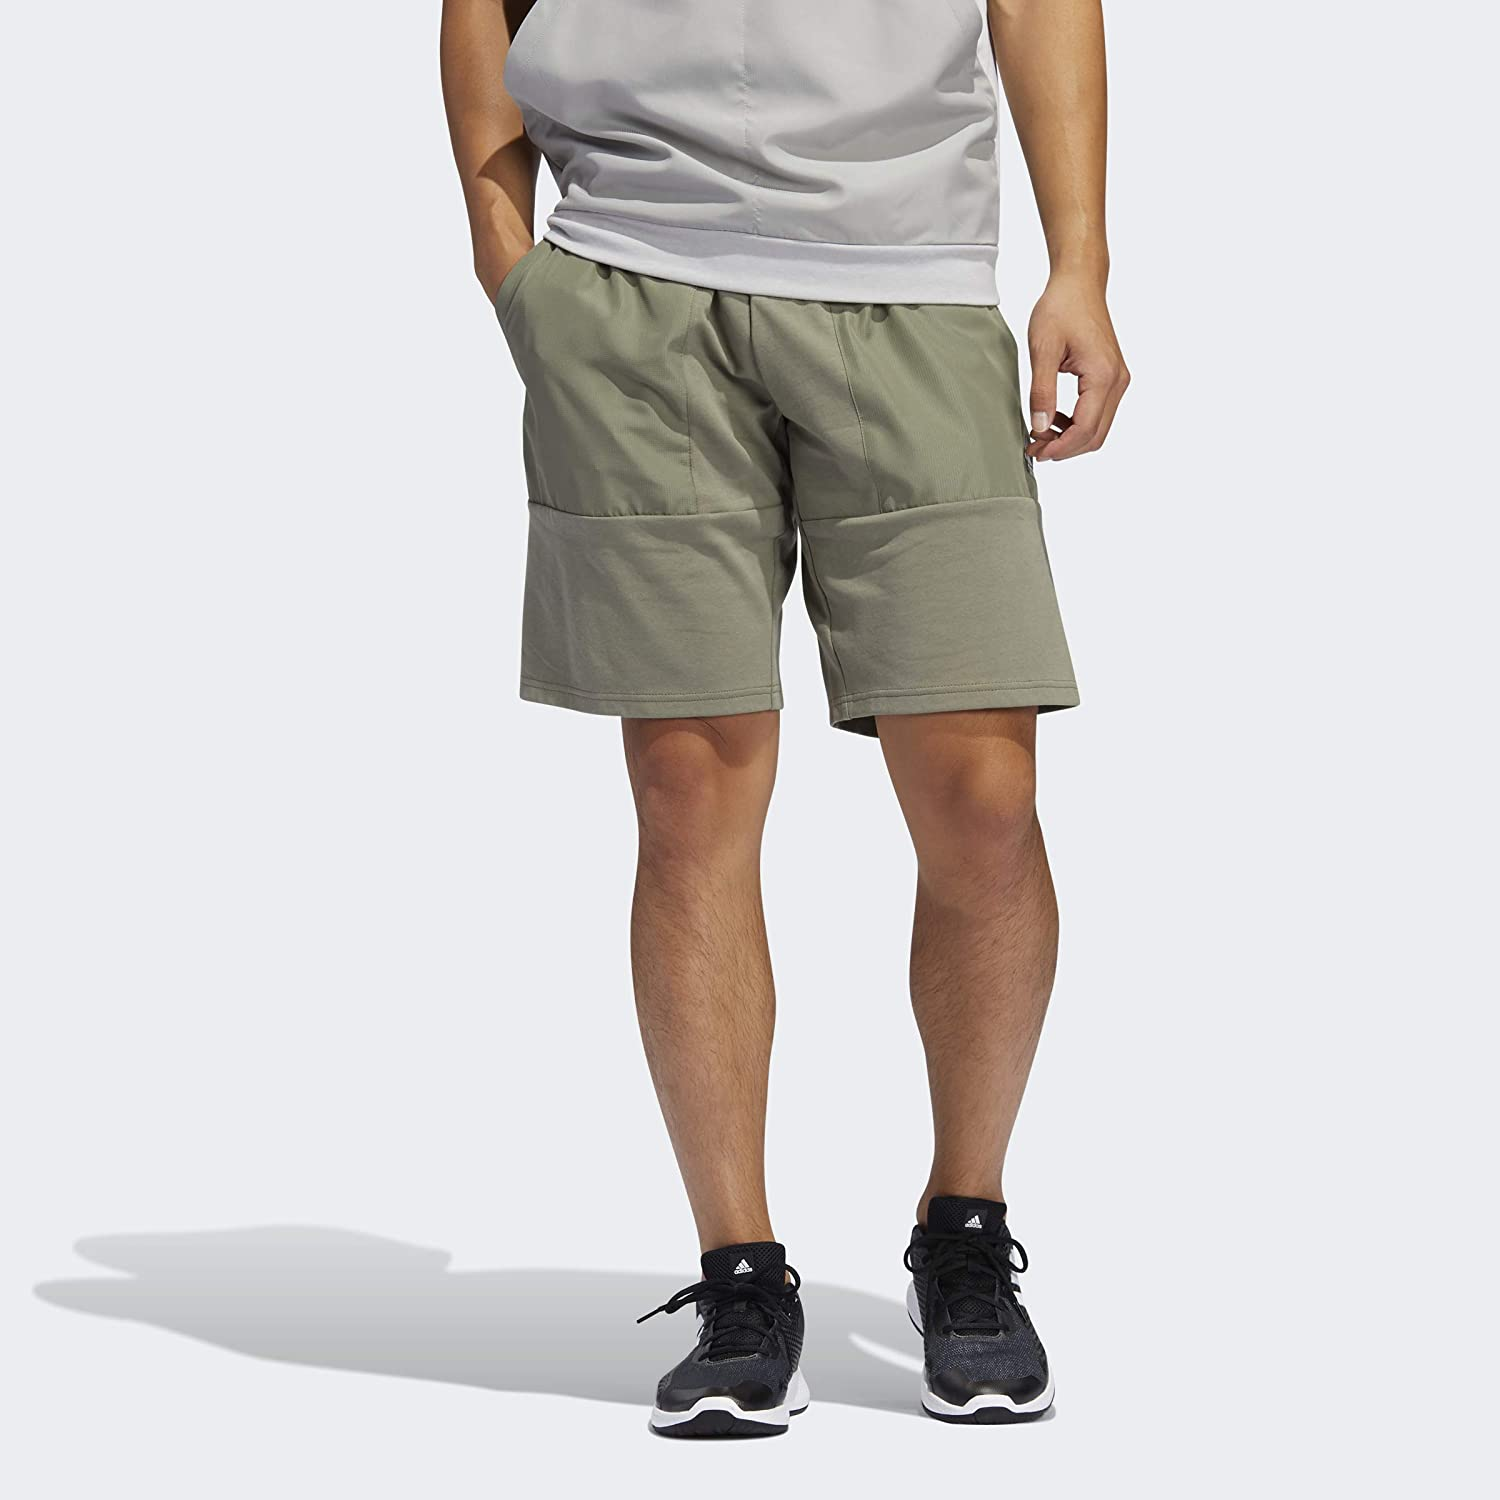 adidas Men's Game and Go Shorts